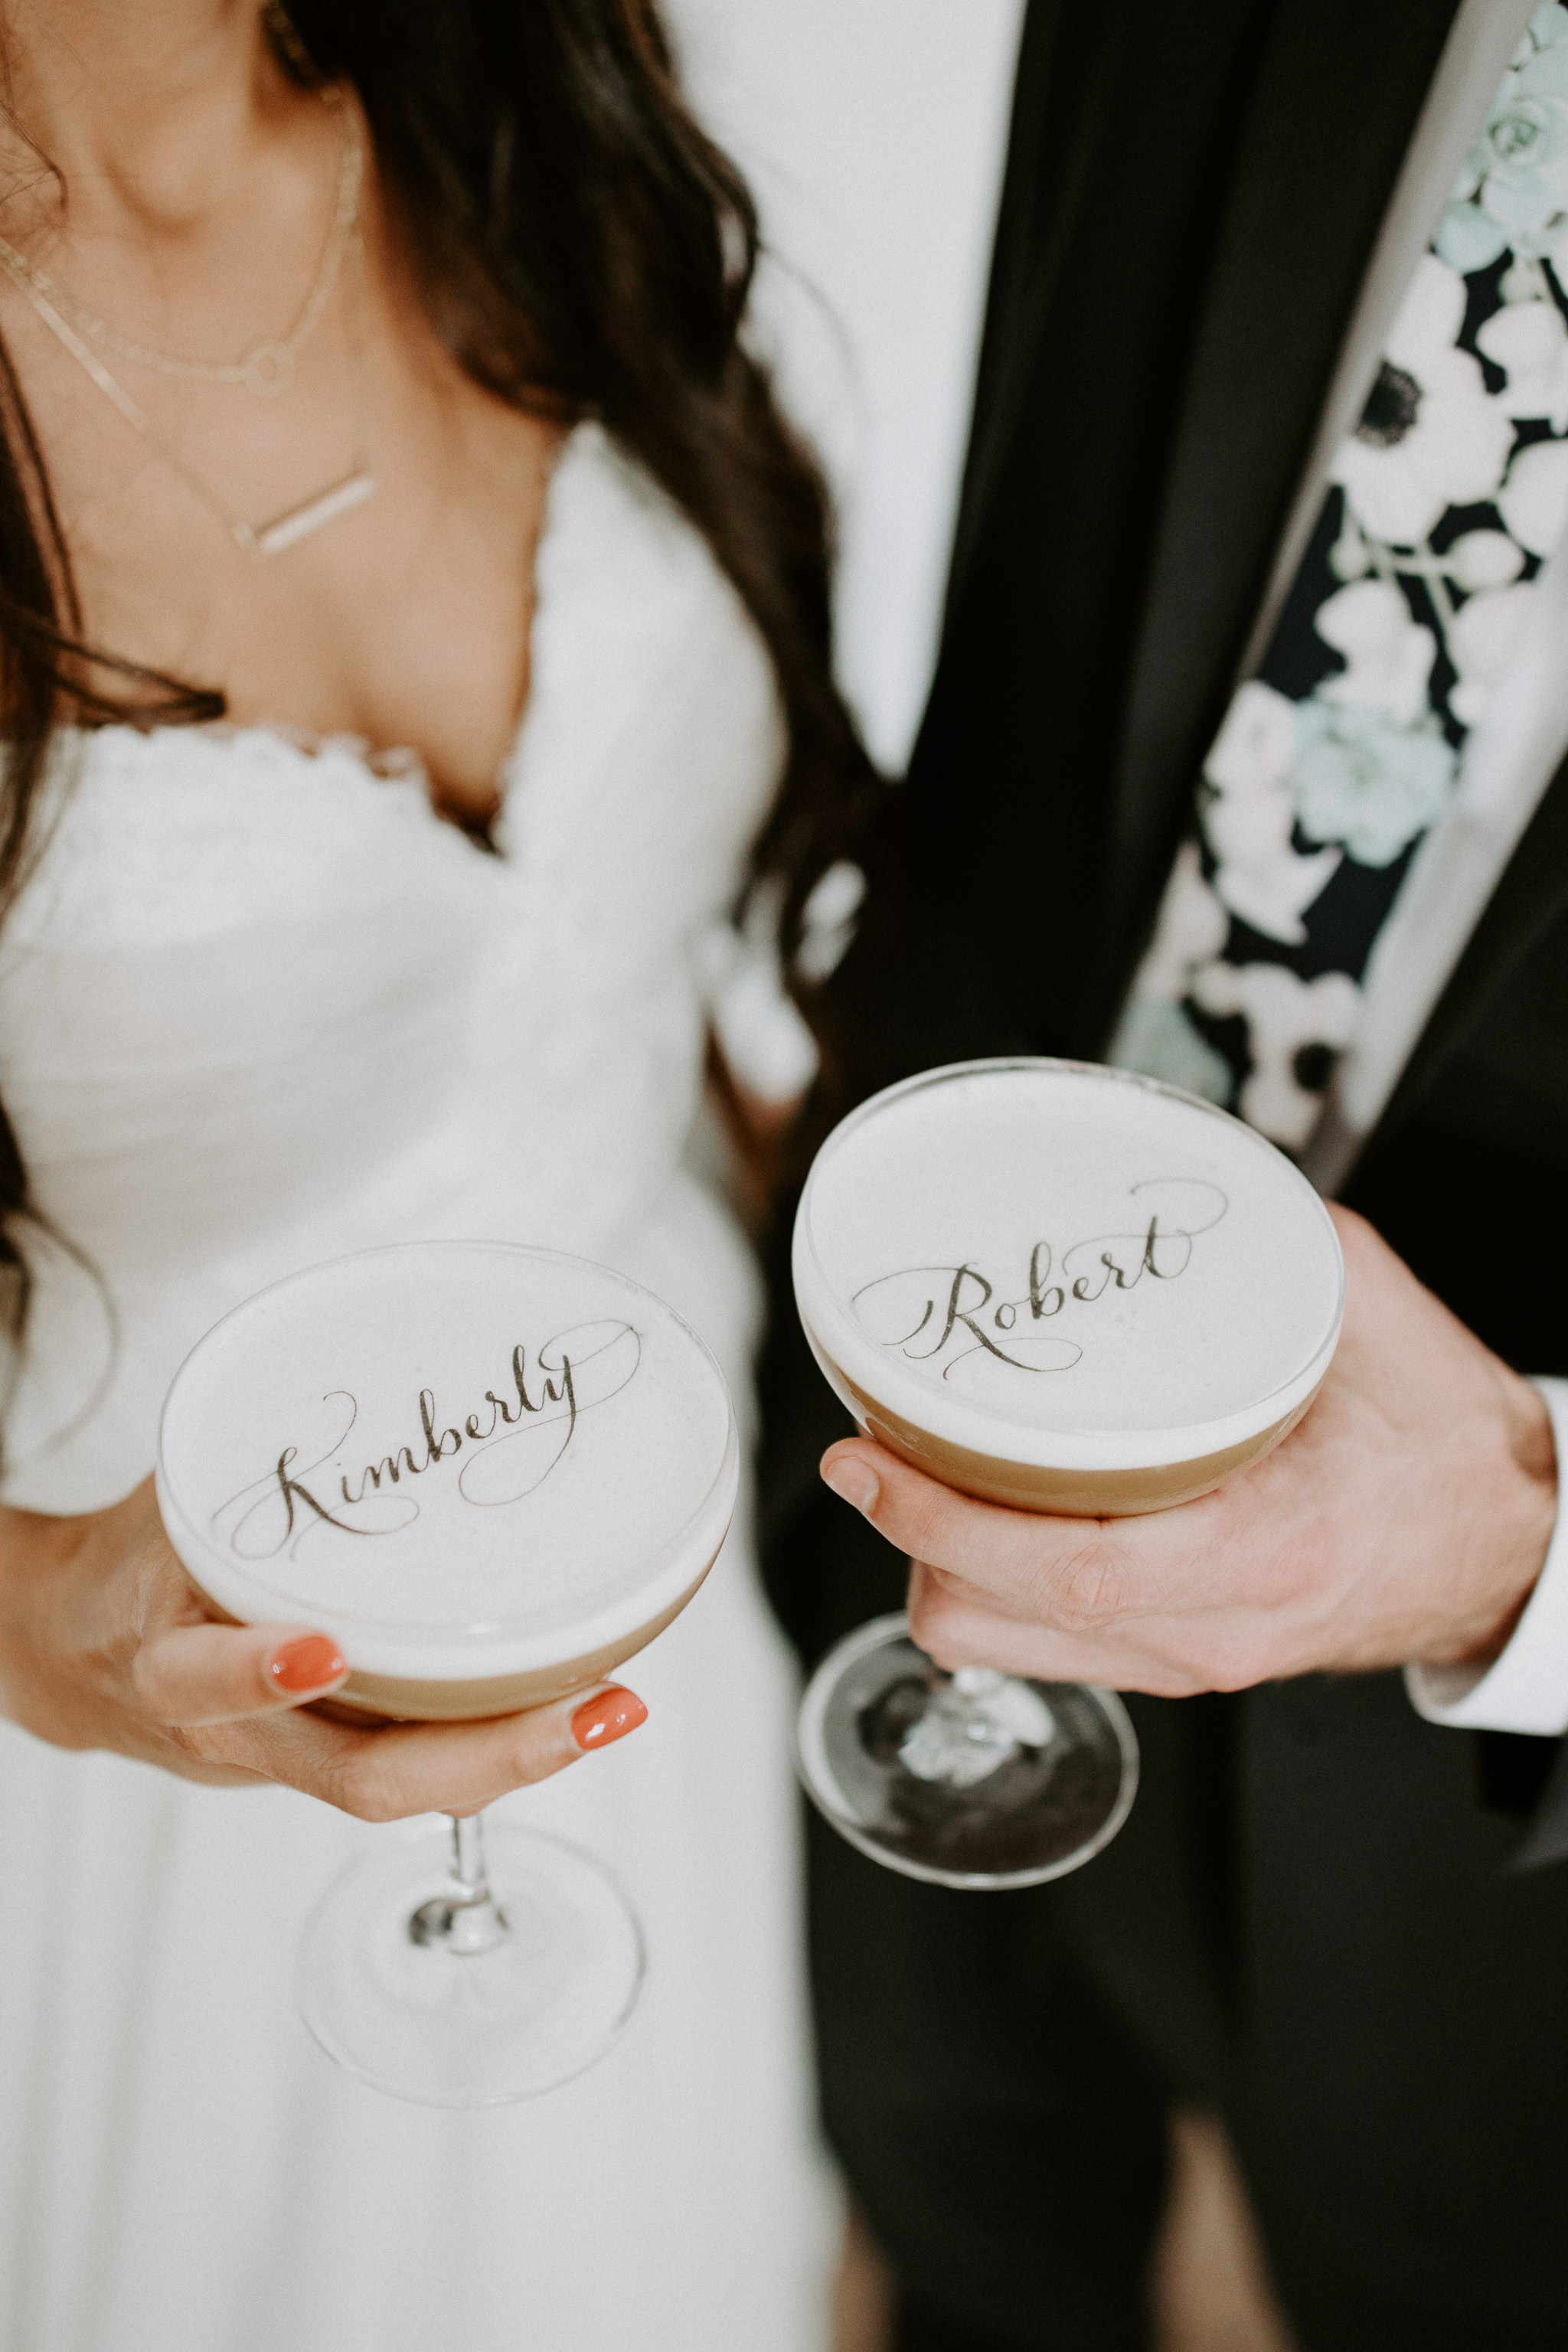 Bride and groom cocktail name holders